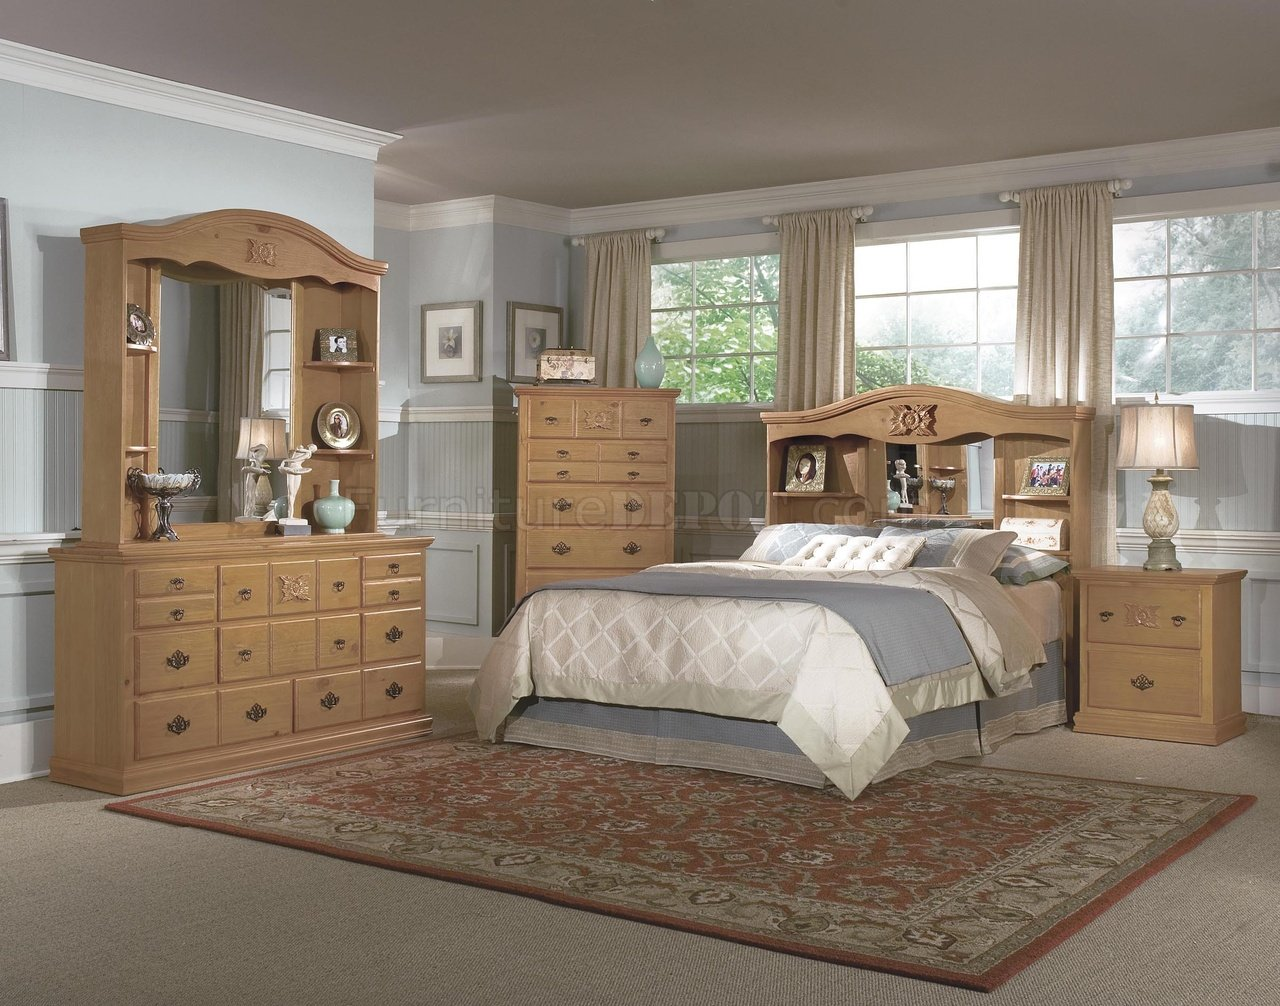 Pine all wood country style bedroom w hand carved wood accents for Country bedroom furniture